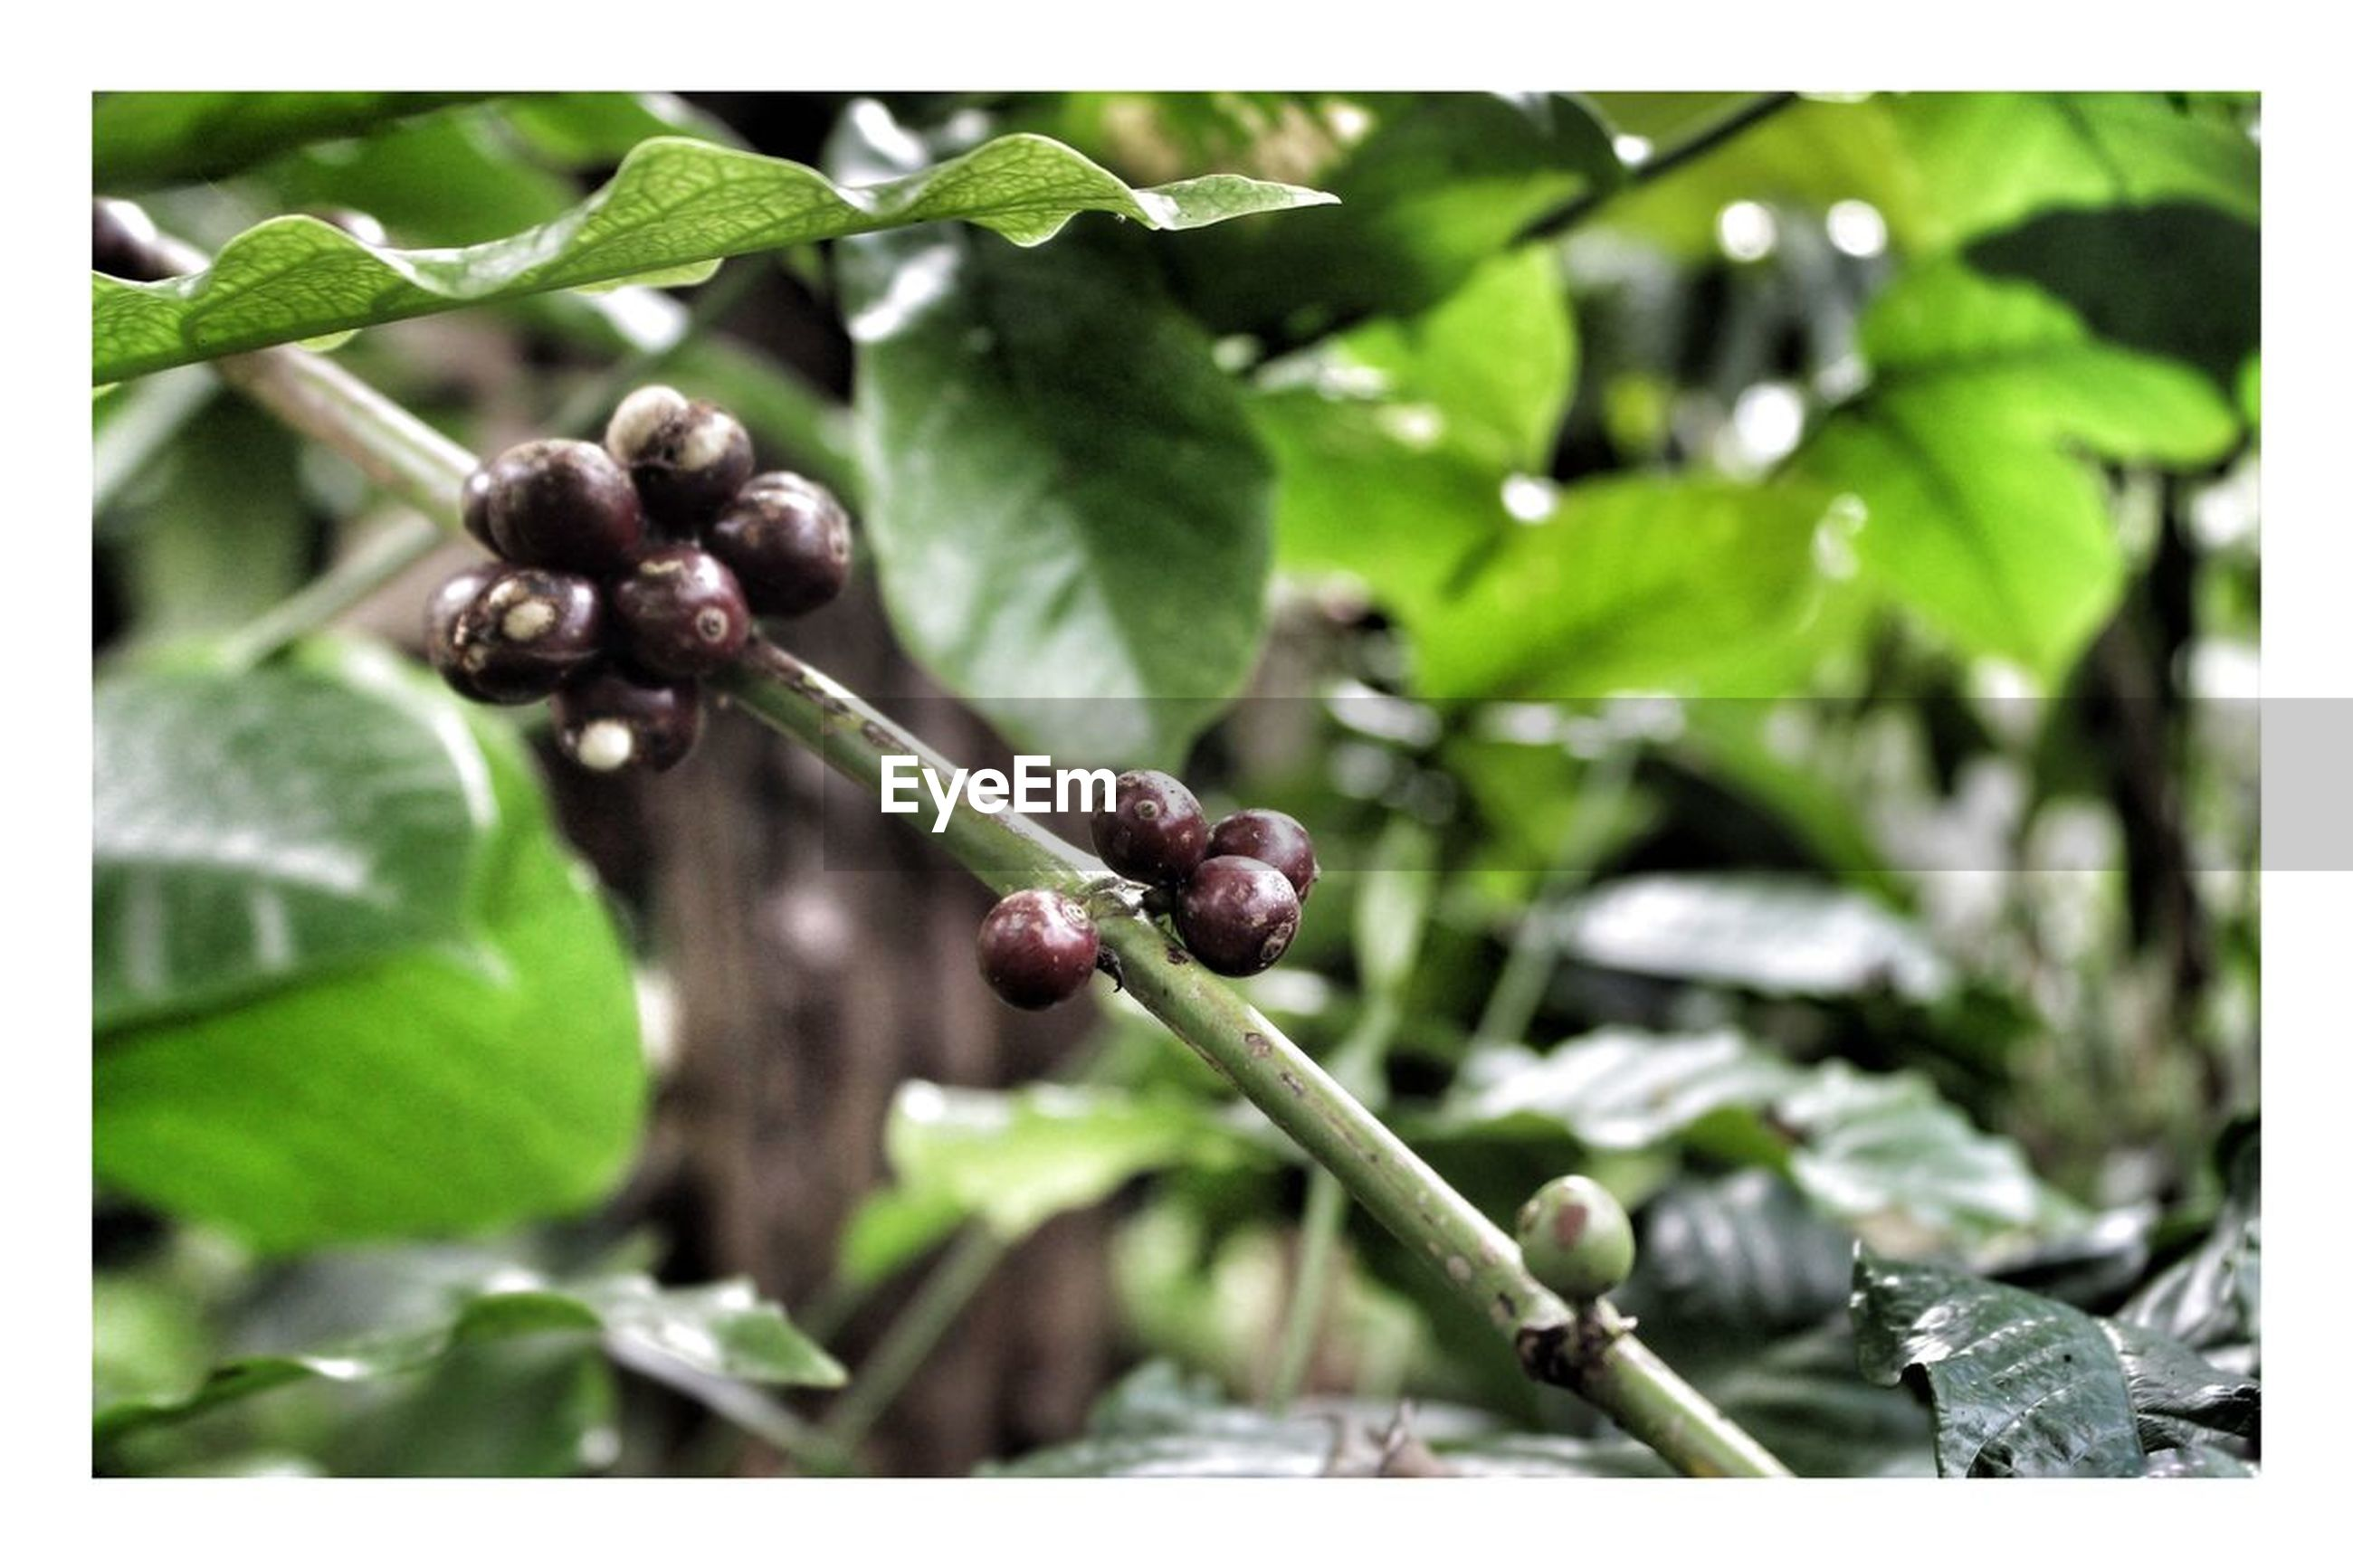 leaf, plant, plant part, growth, transfer print, focus on foreground, close-up, auto post production filter, green color, nature, fruit, no people, day, freshness, food and drink, food, healthy eating, plant stem, tree, beauty in nature, outdoors, ripe